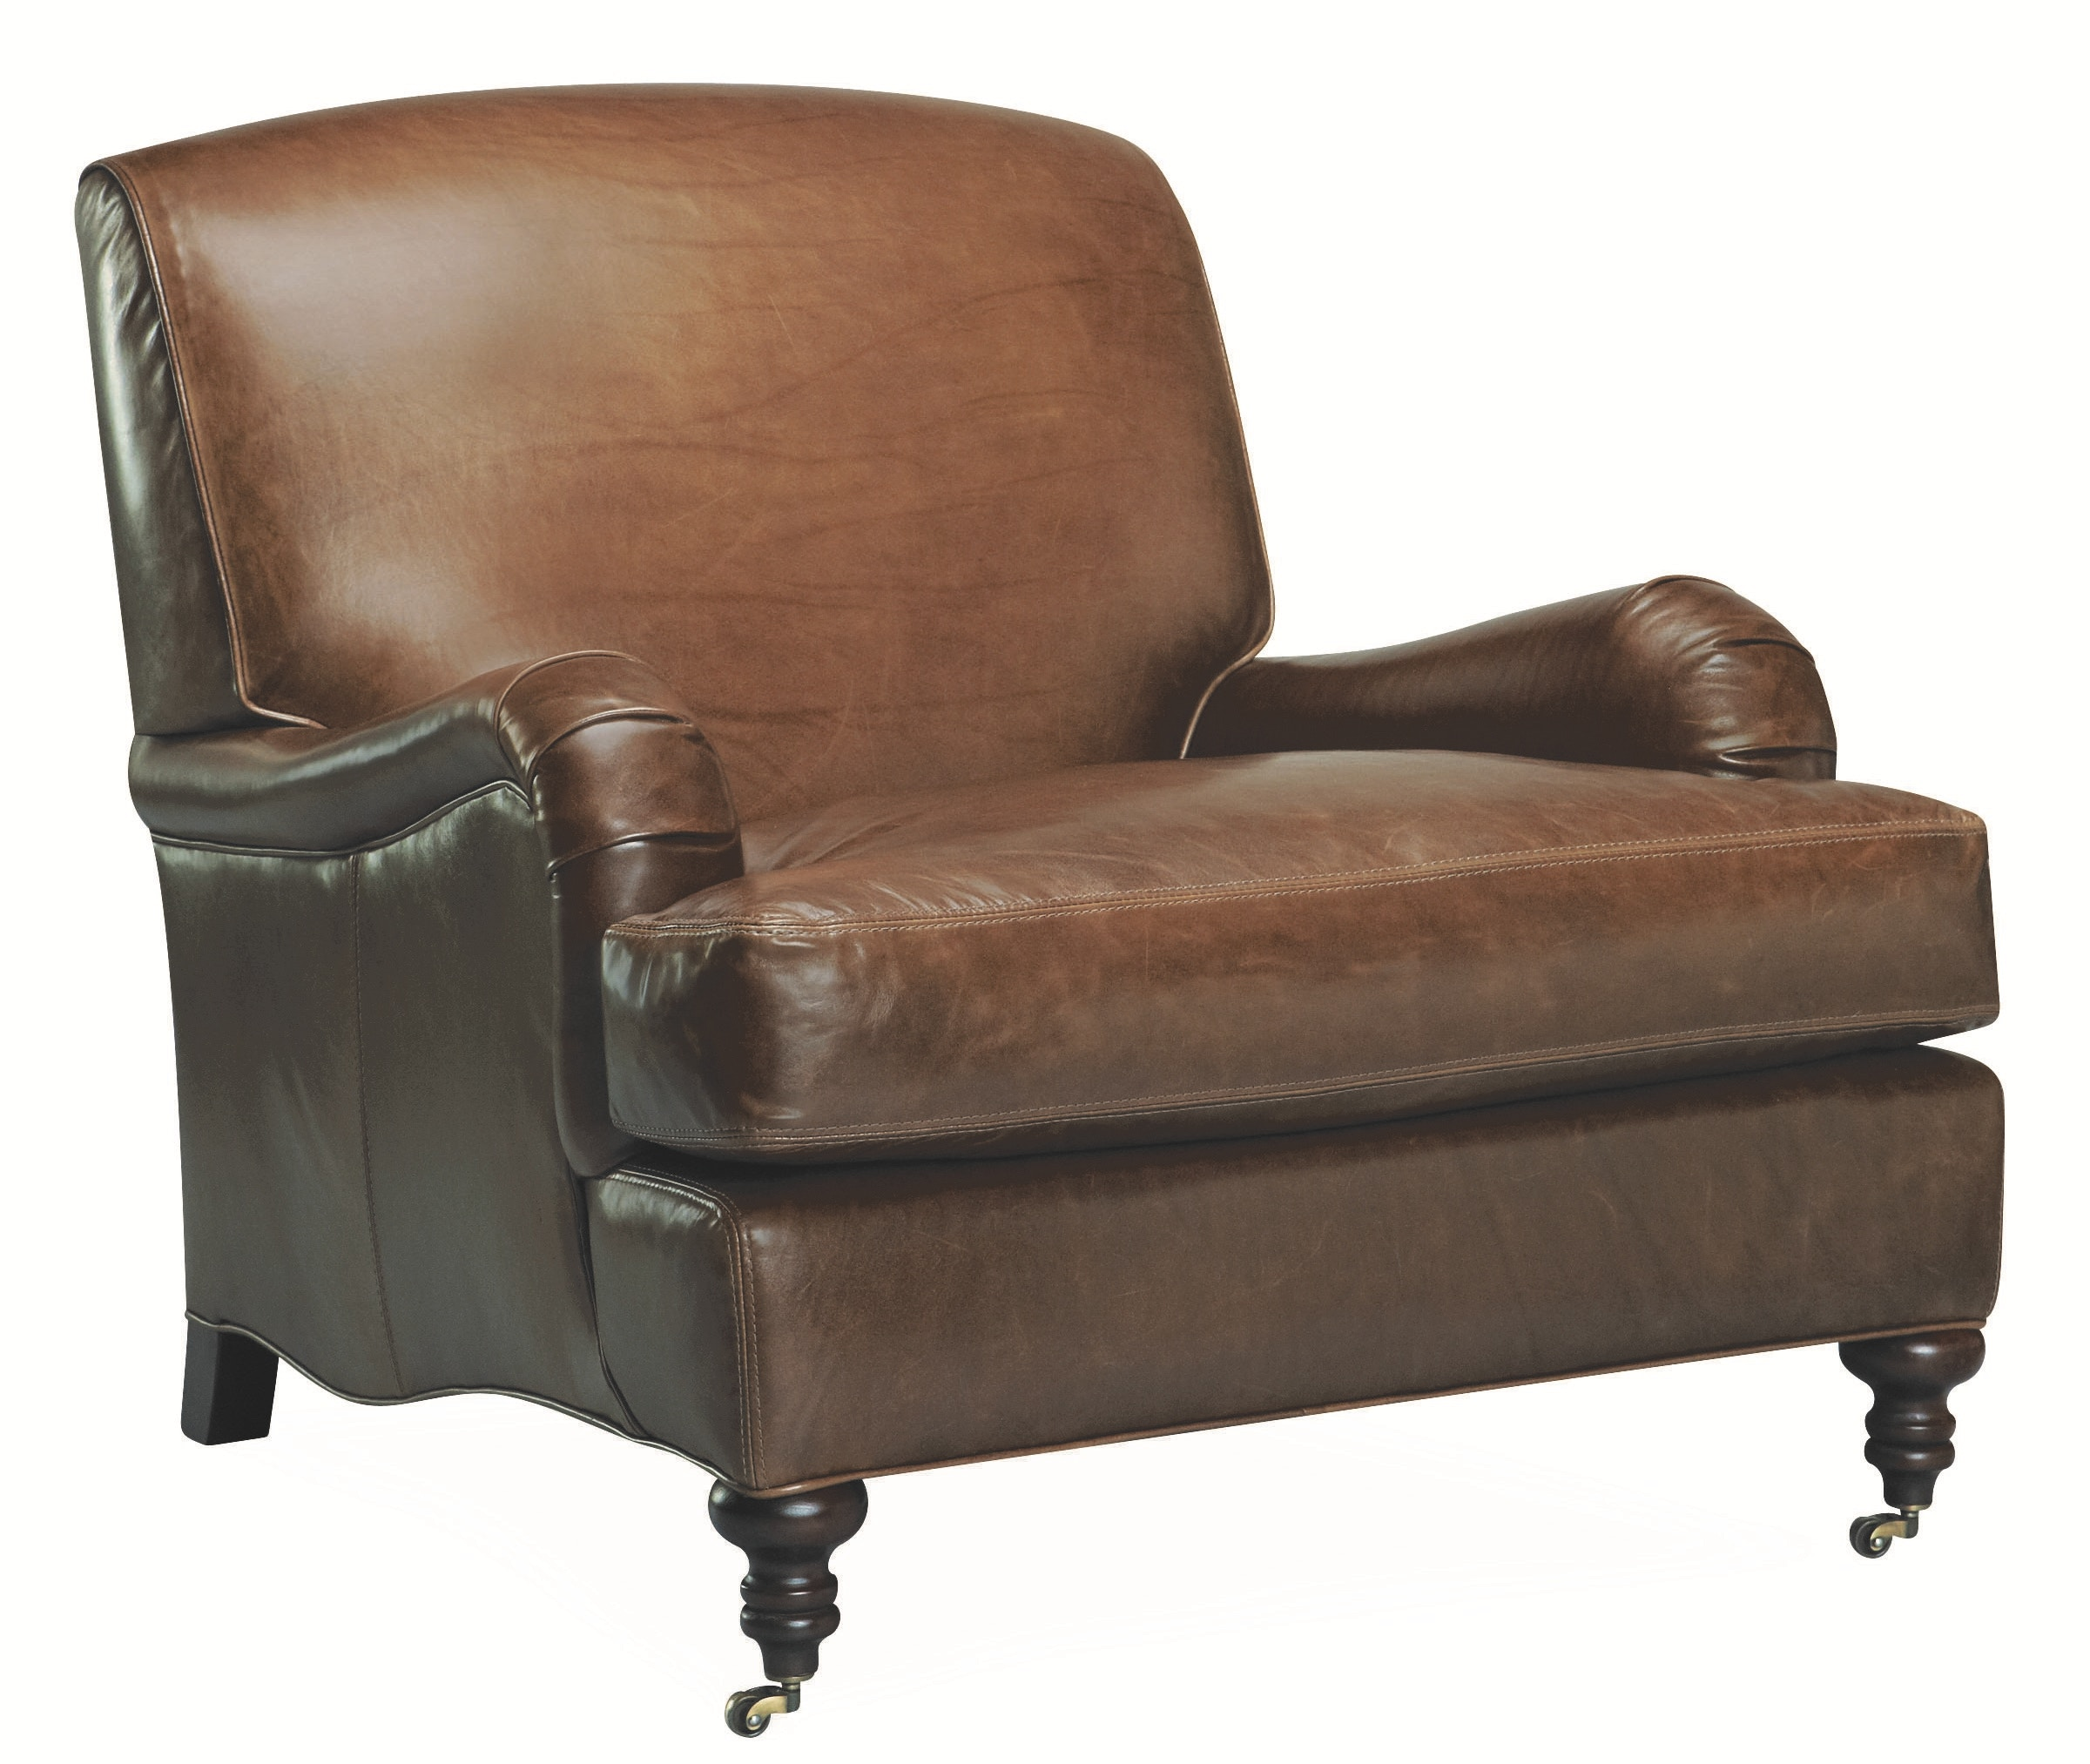 Wonderful Lee Industries Leather Chair L3278 01